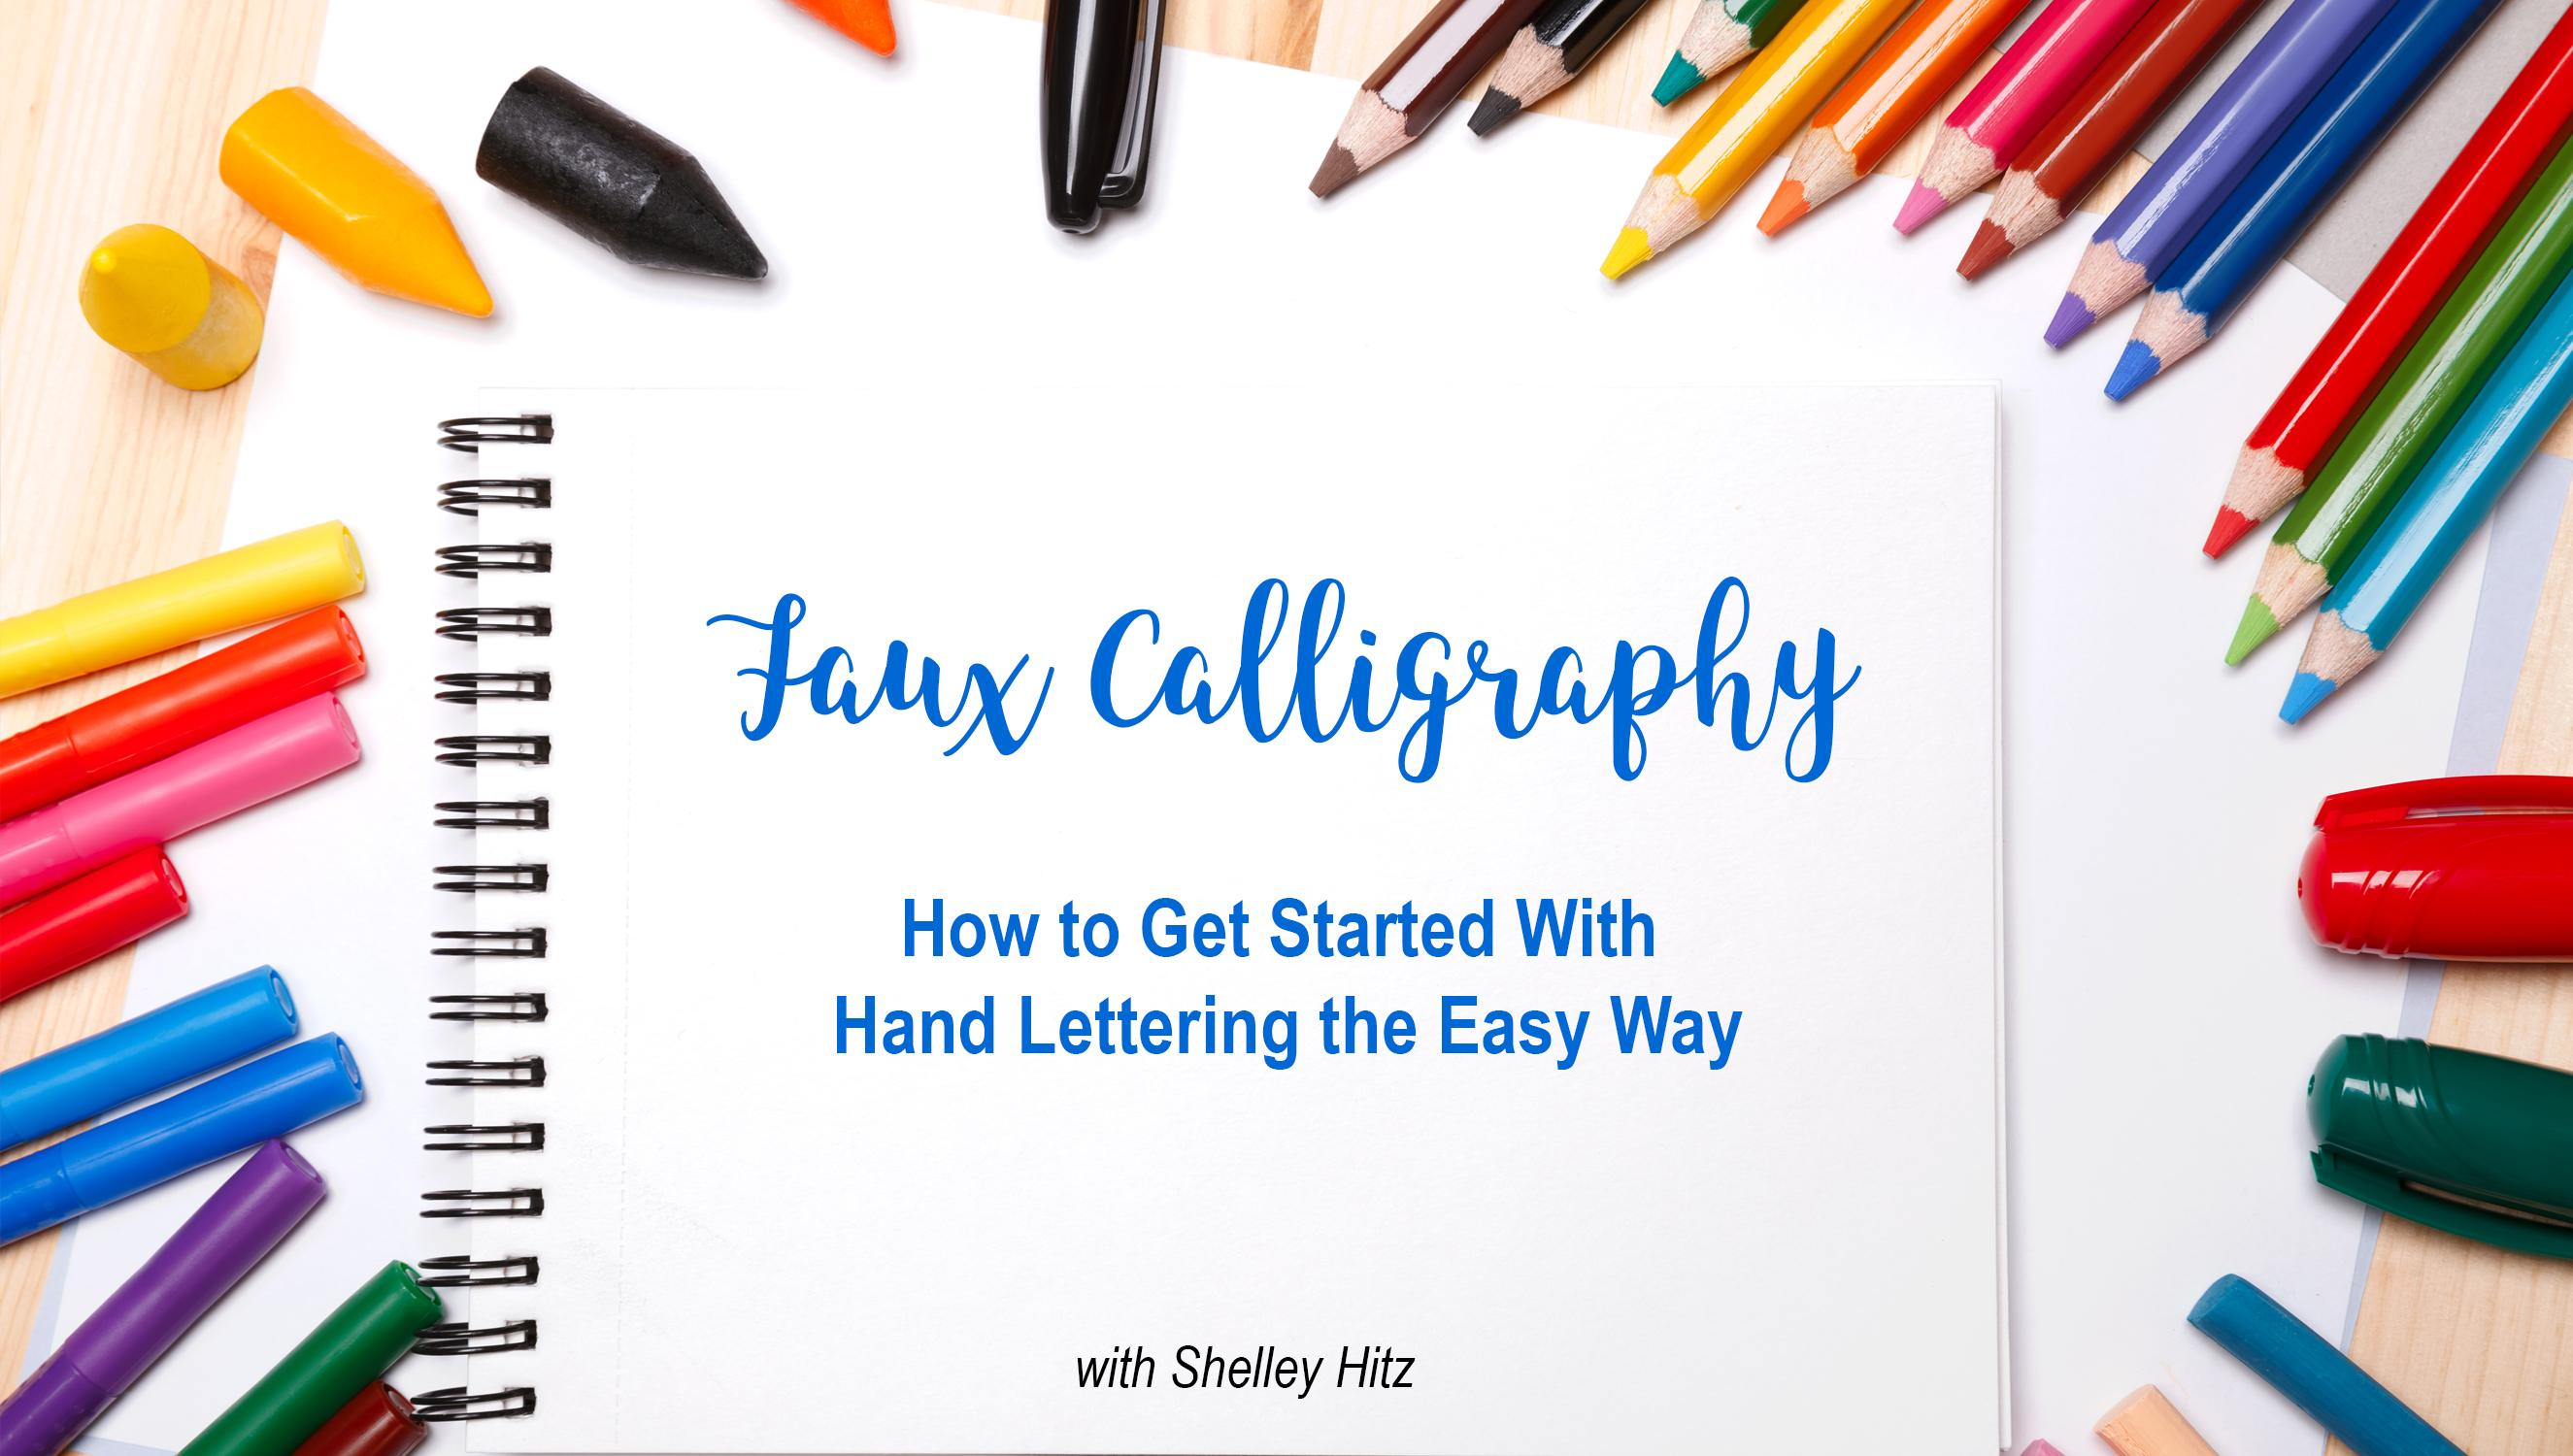 Faux Calligraphy How To Get Started With Hand Lettering